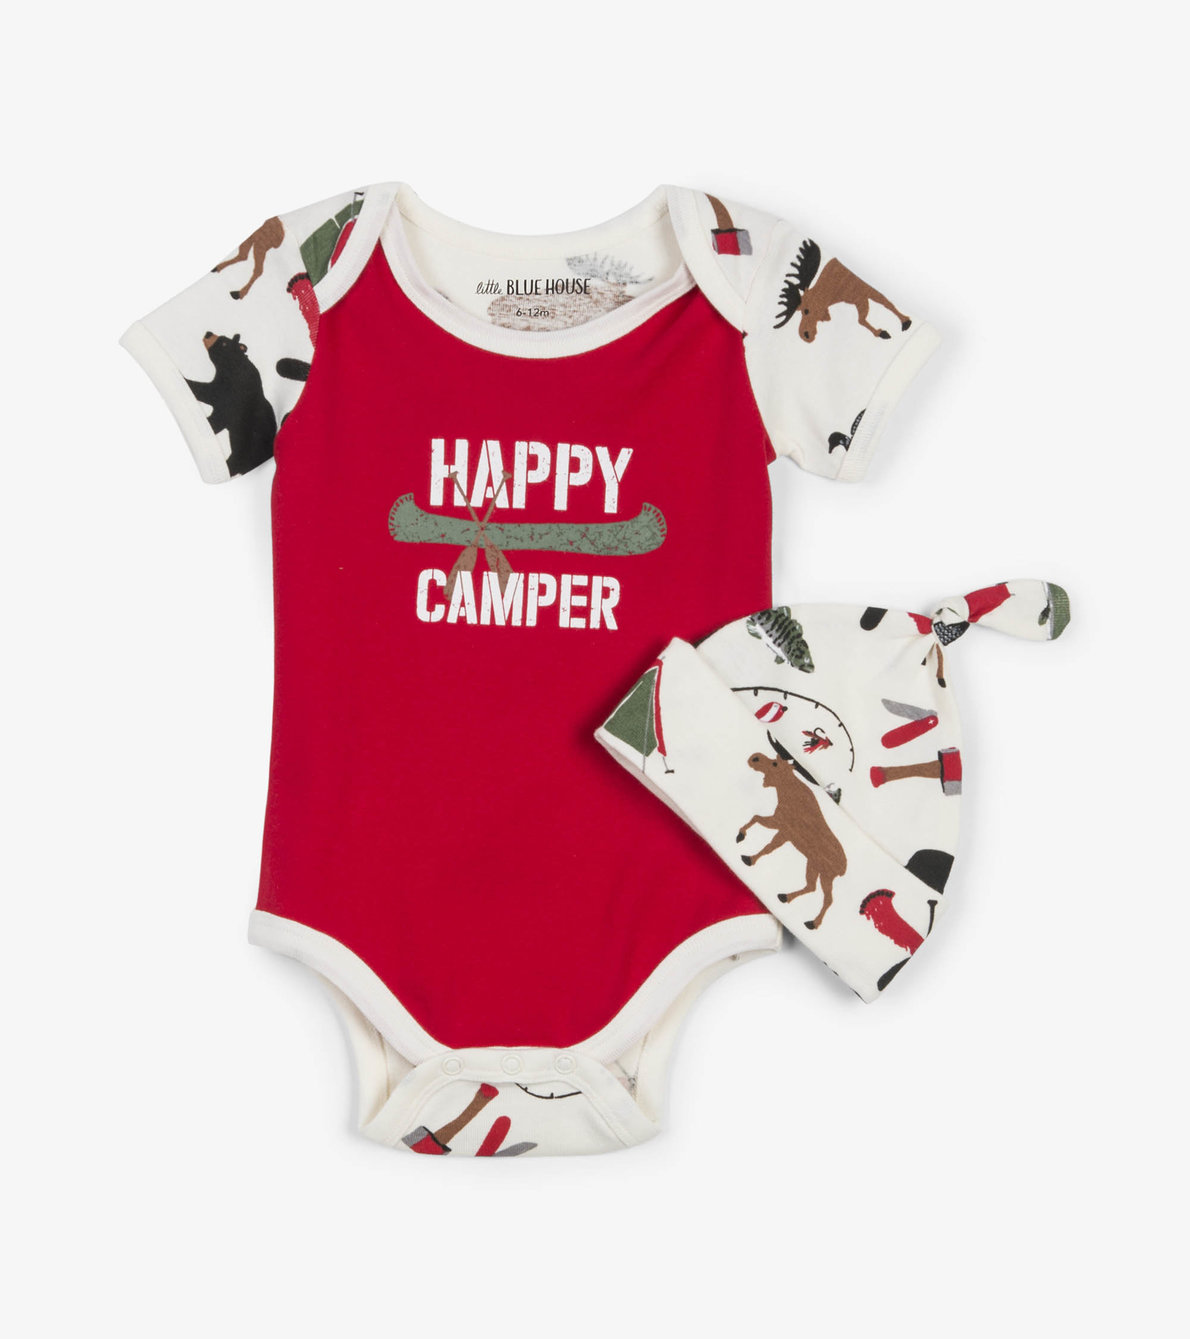 View larger image of Happy Camper Baby Bodysuit with Hat